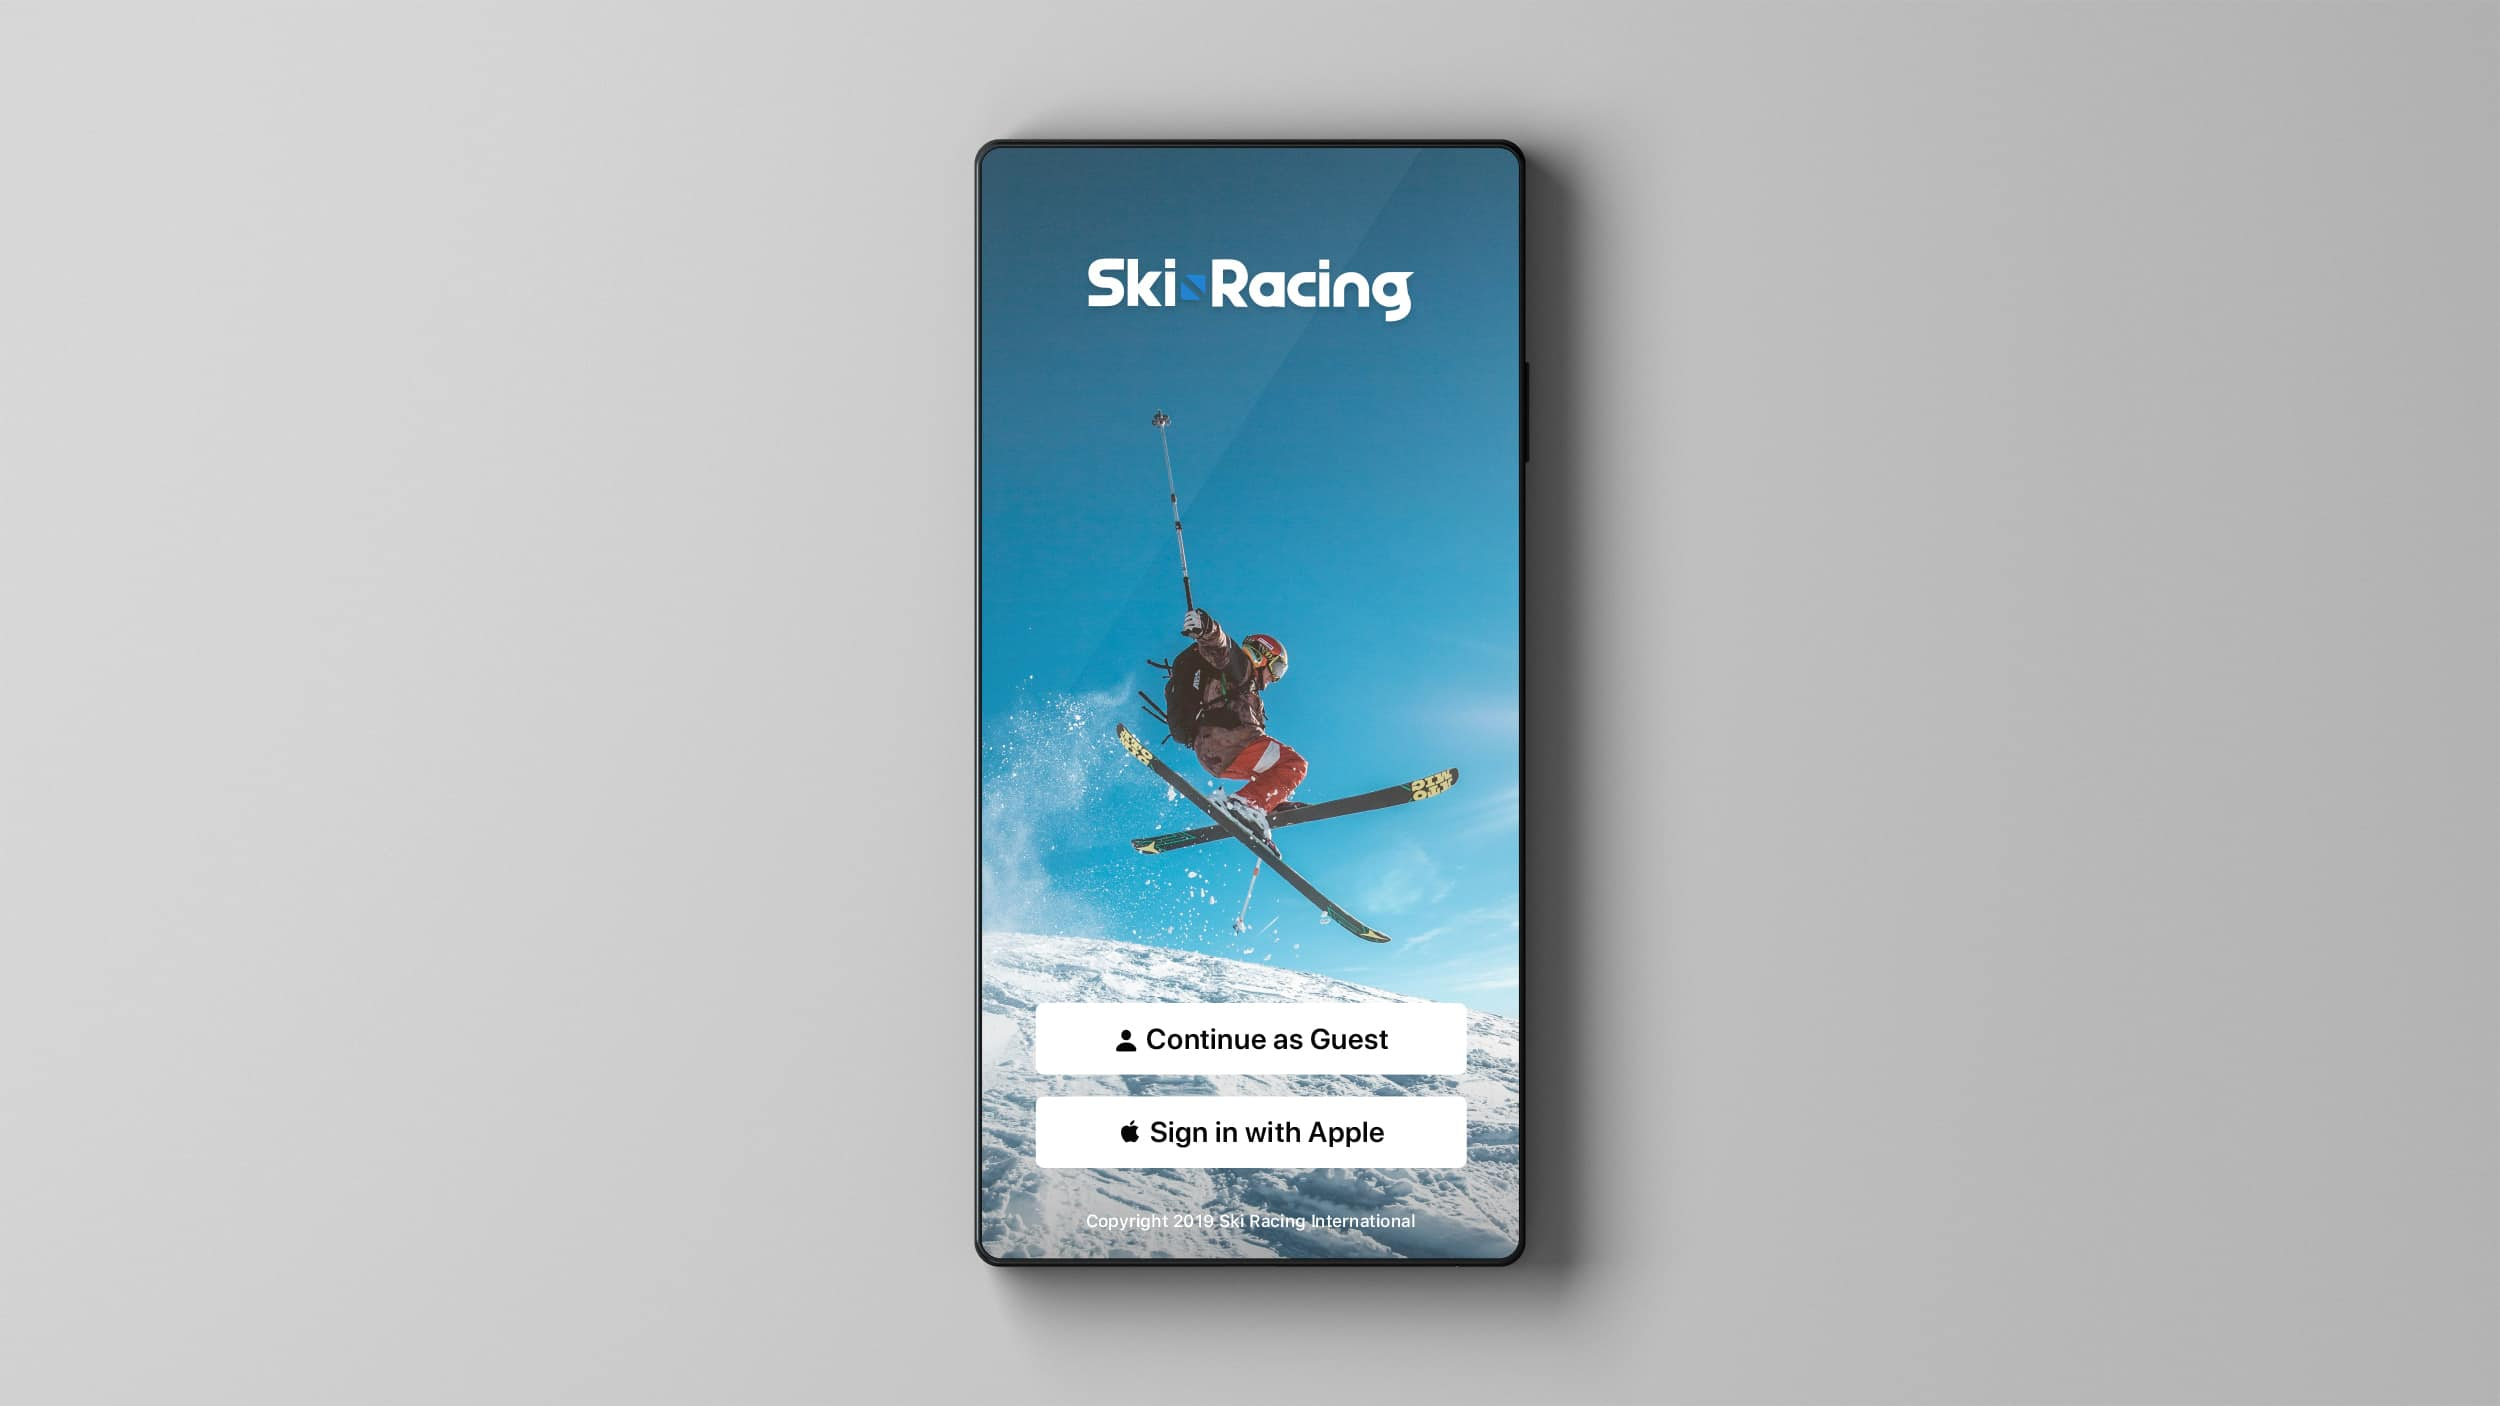 Ski Racing Splash Screen Prototype